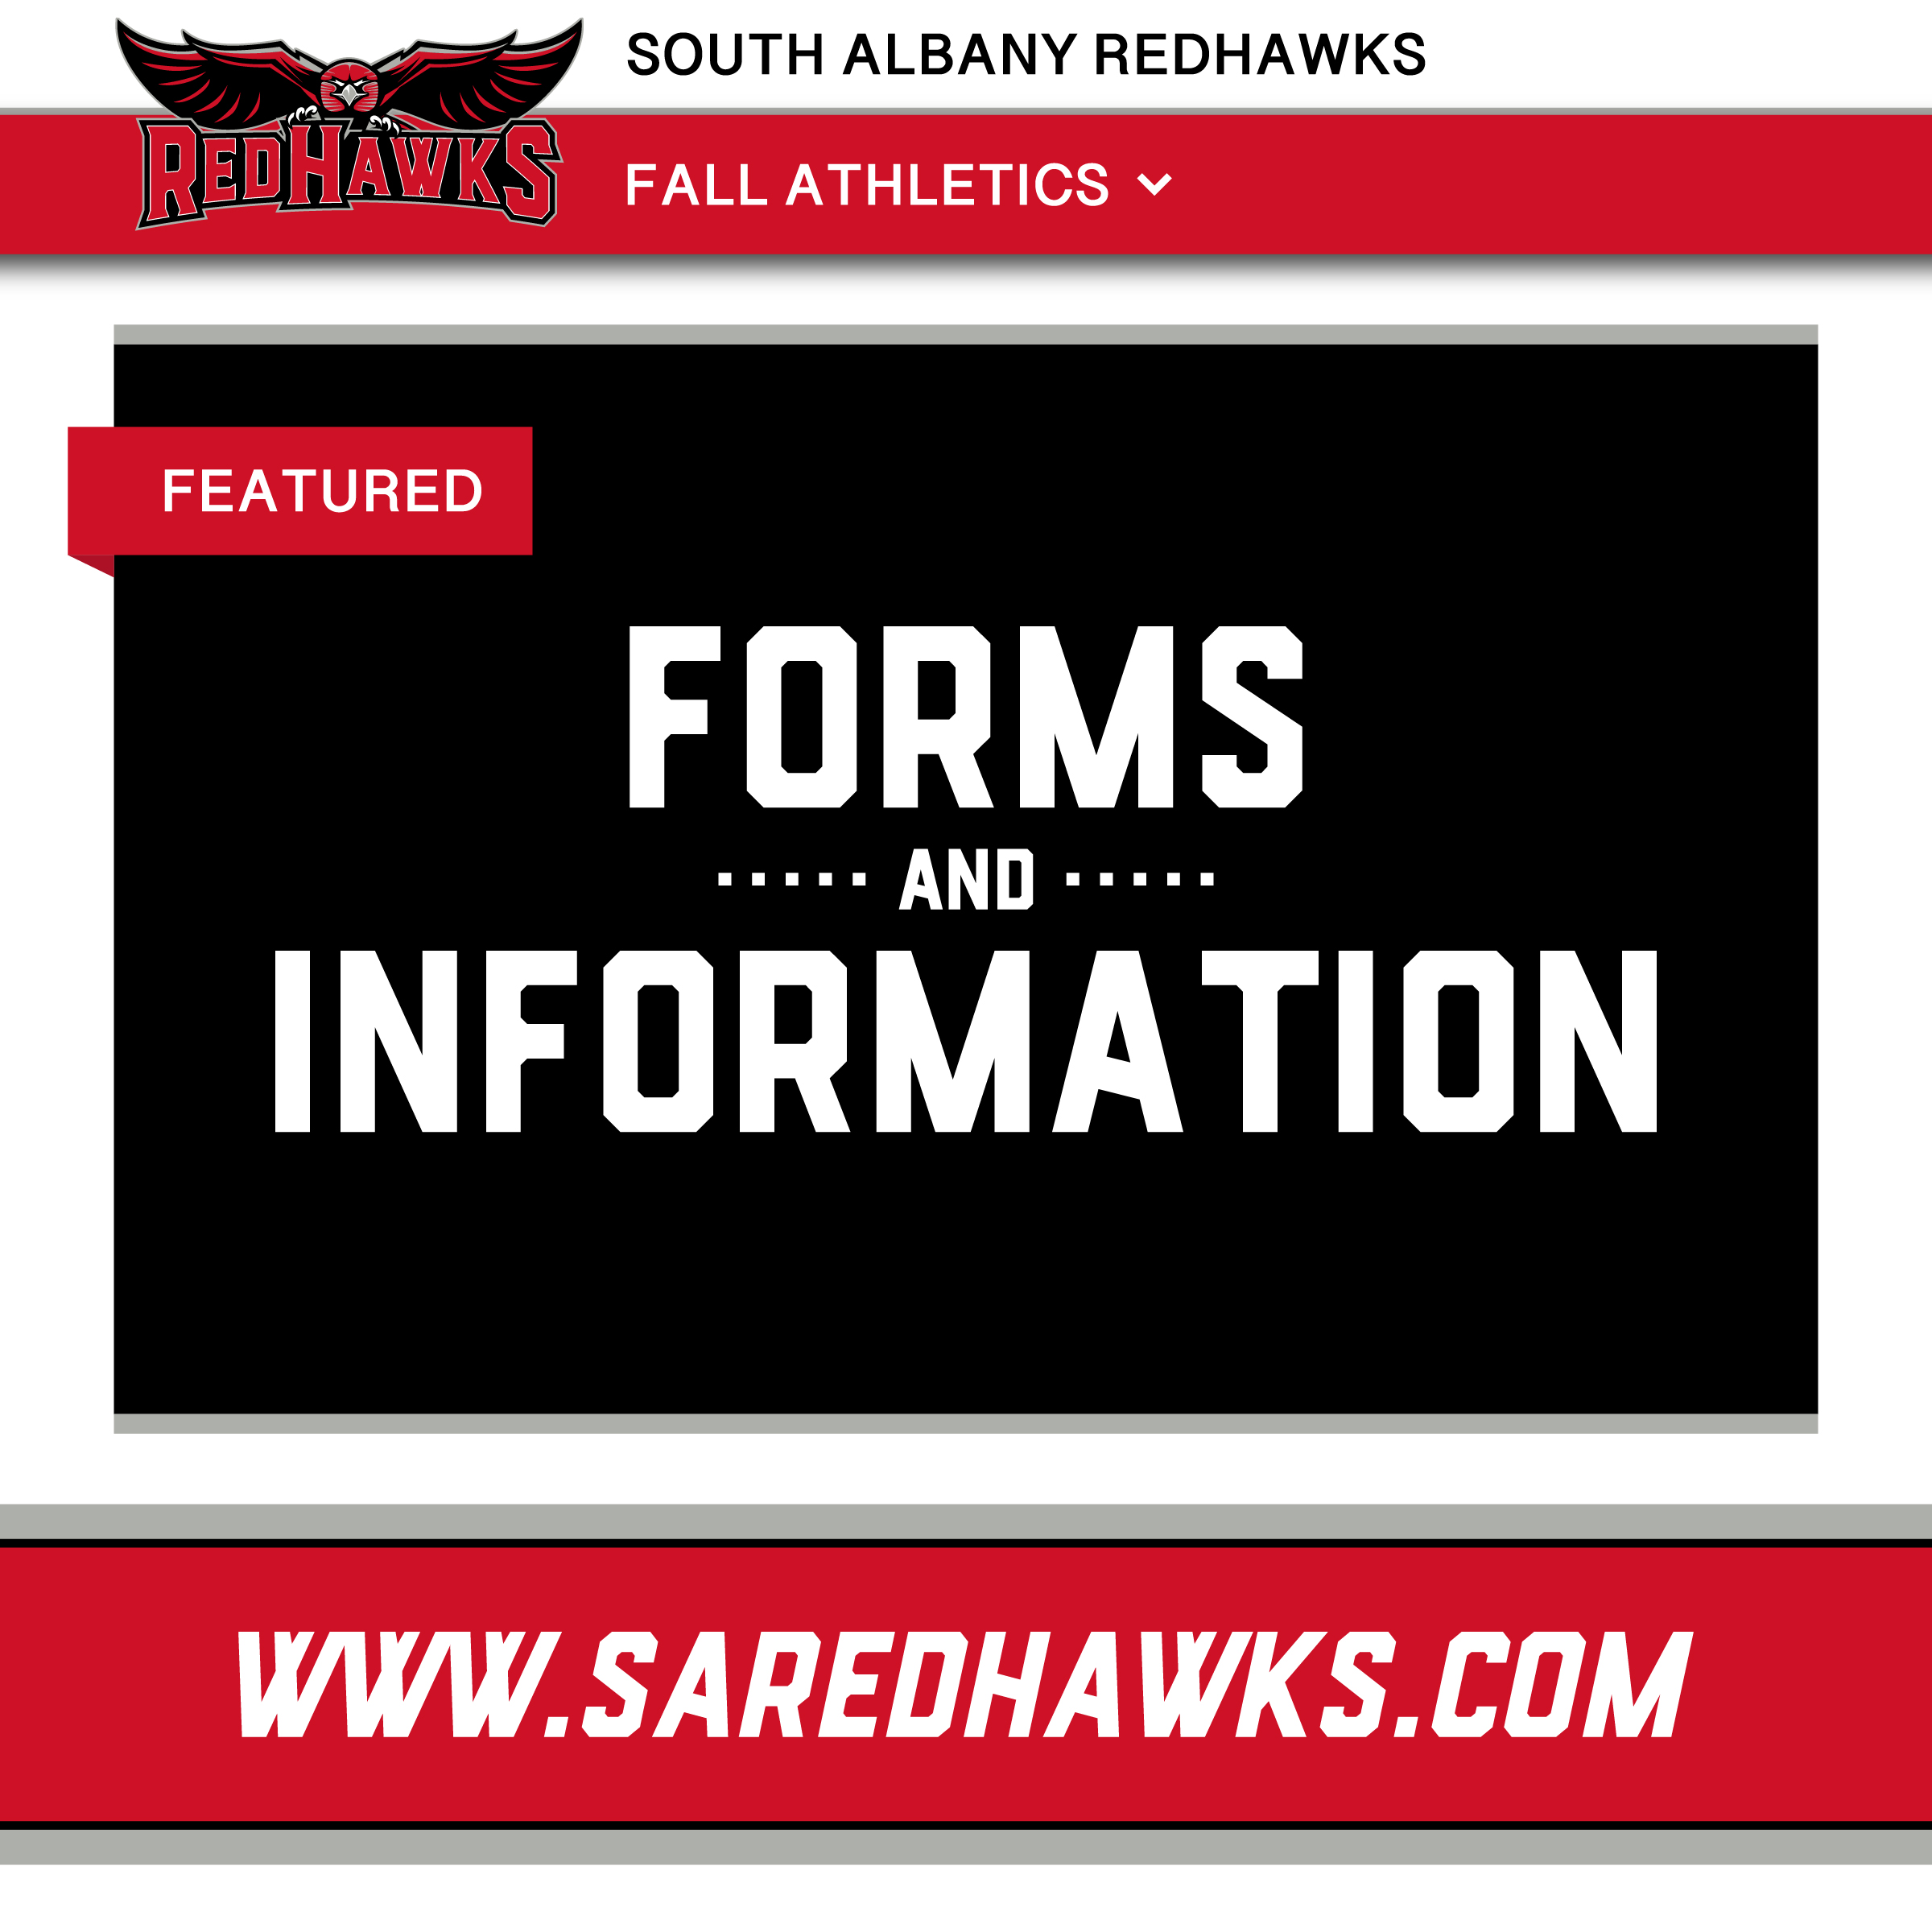 REQUIRED ATHLETIC PARTICIPATION FORMS